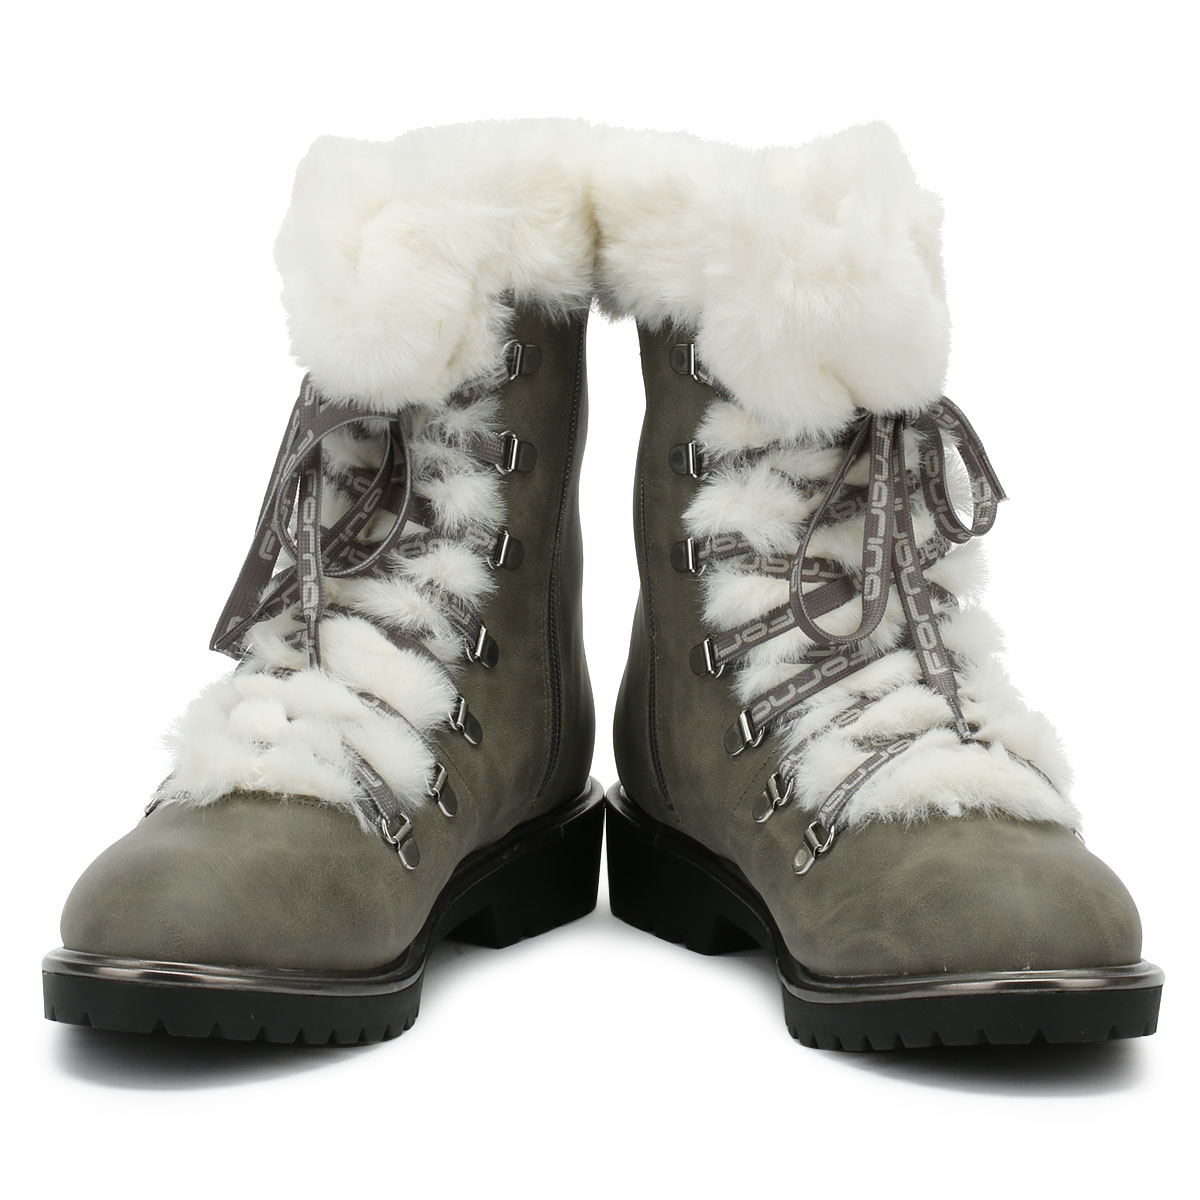 Fornarina Mik Fur Womens Grey Boots Lace Up Leather Warm Winter Shoes